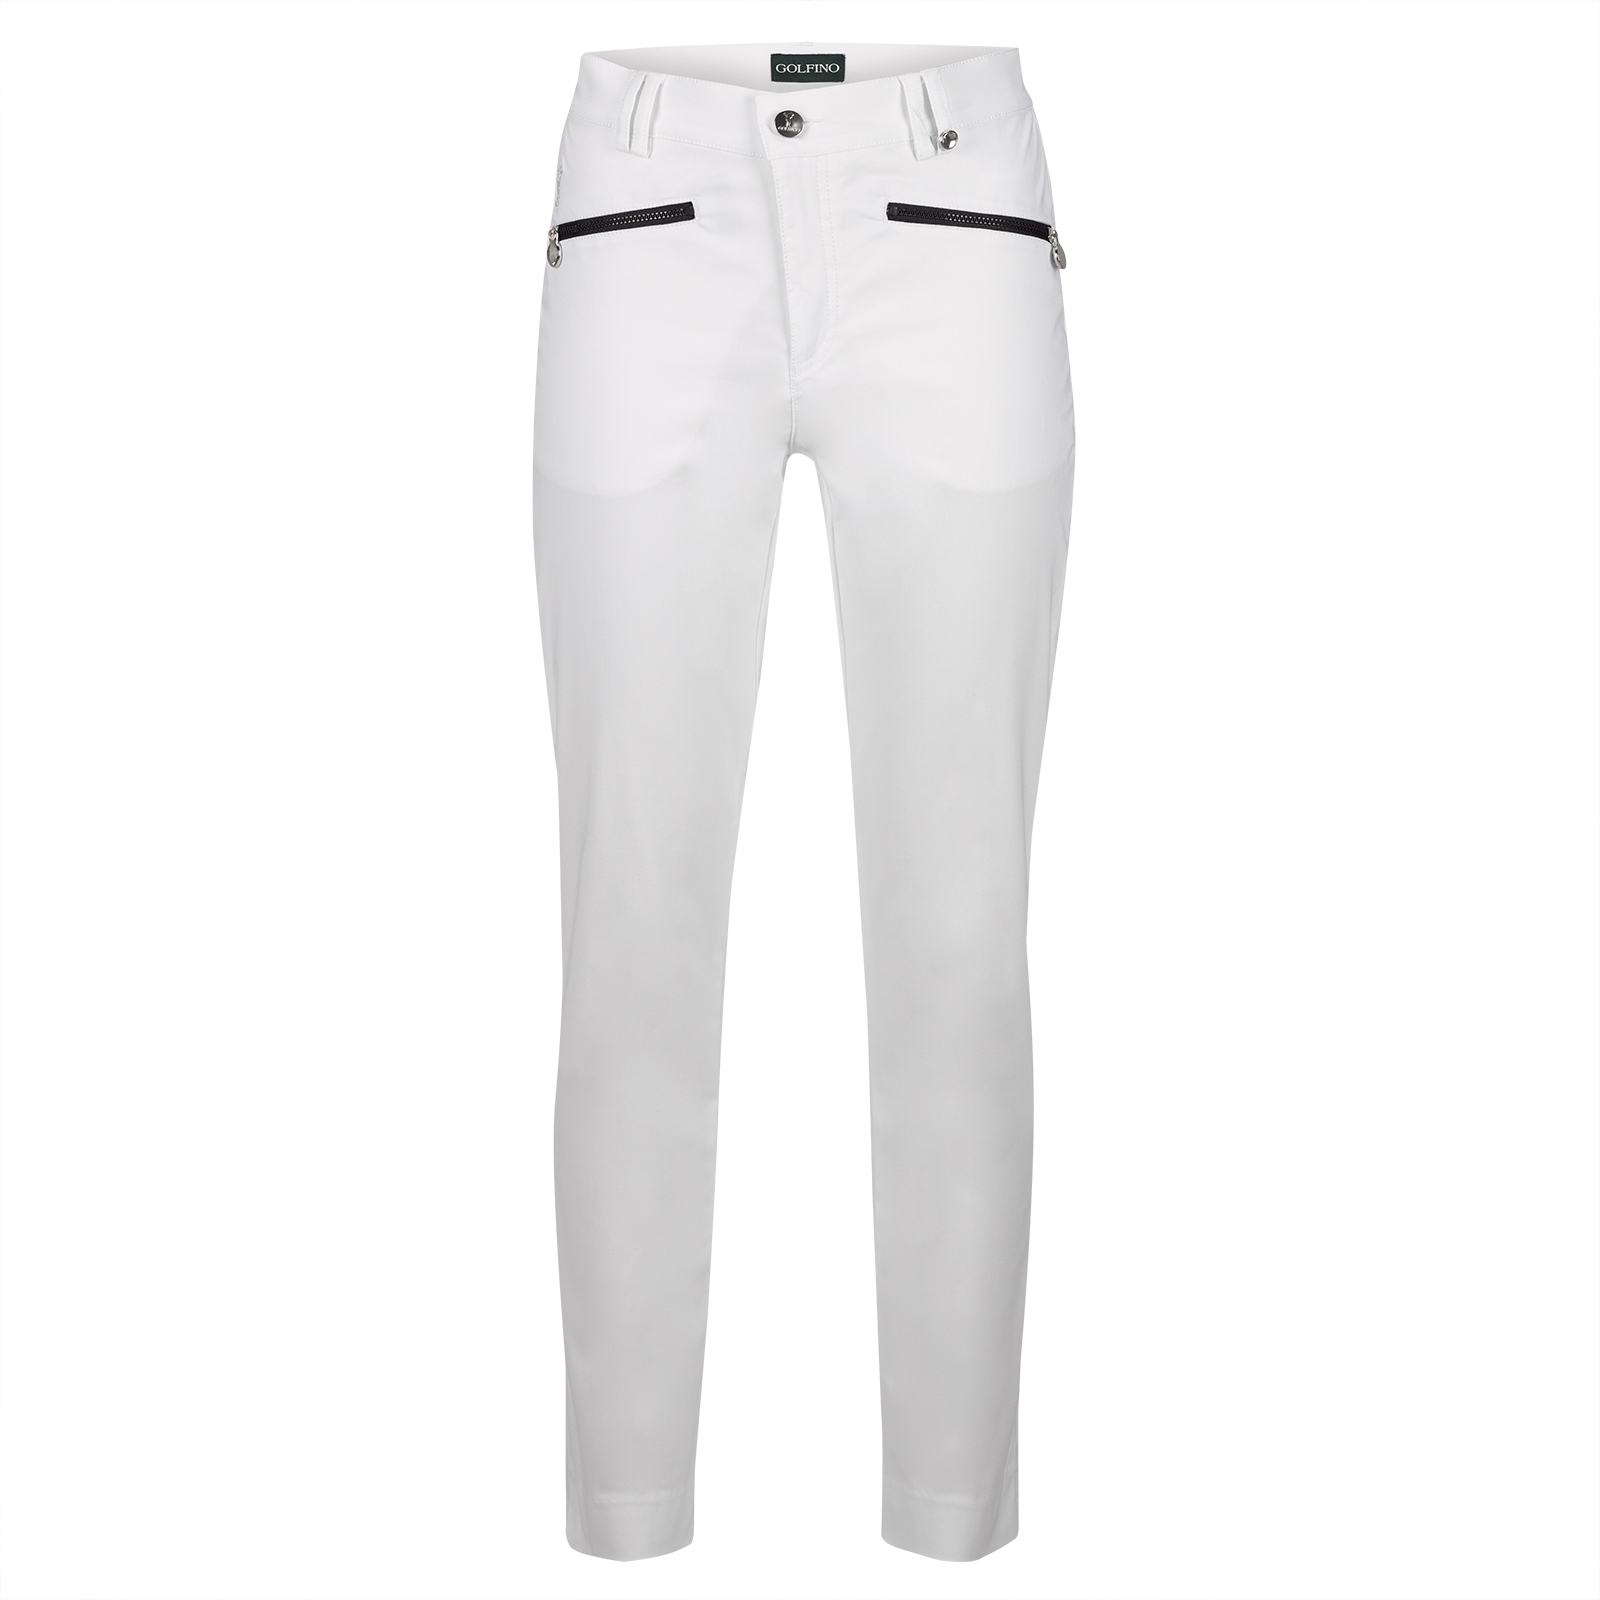 Cotton-Blend 7/8 Damen Golfhose mit Sofileta® UV Protection